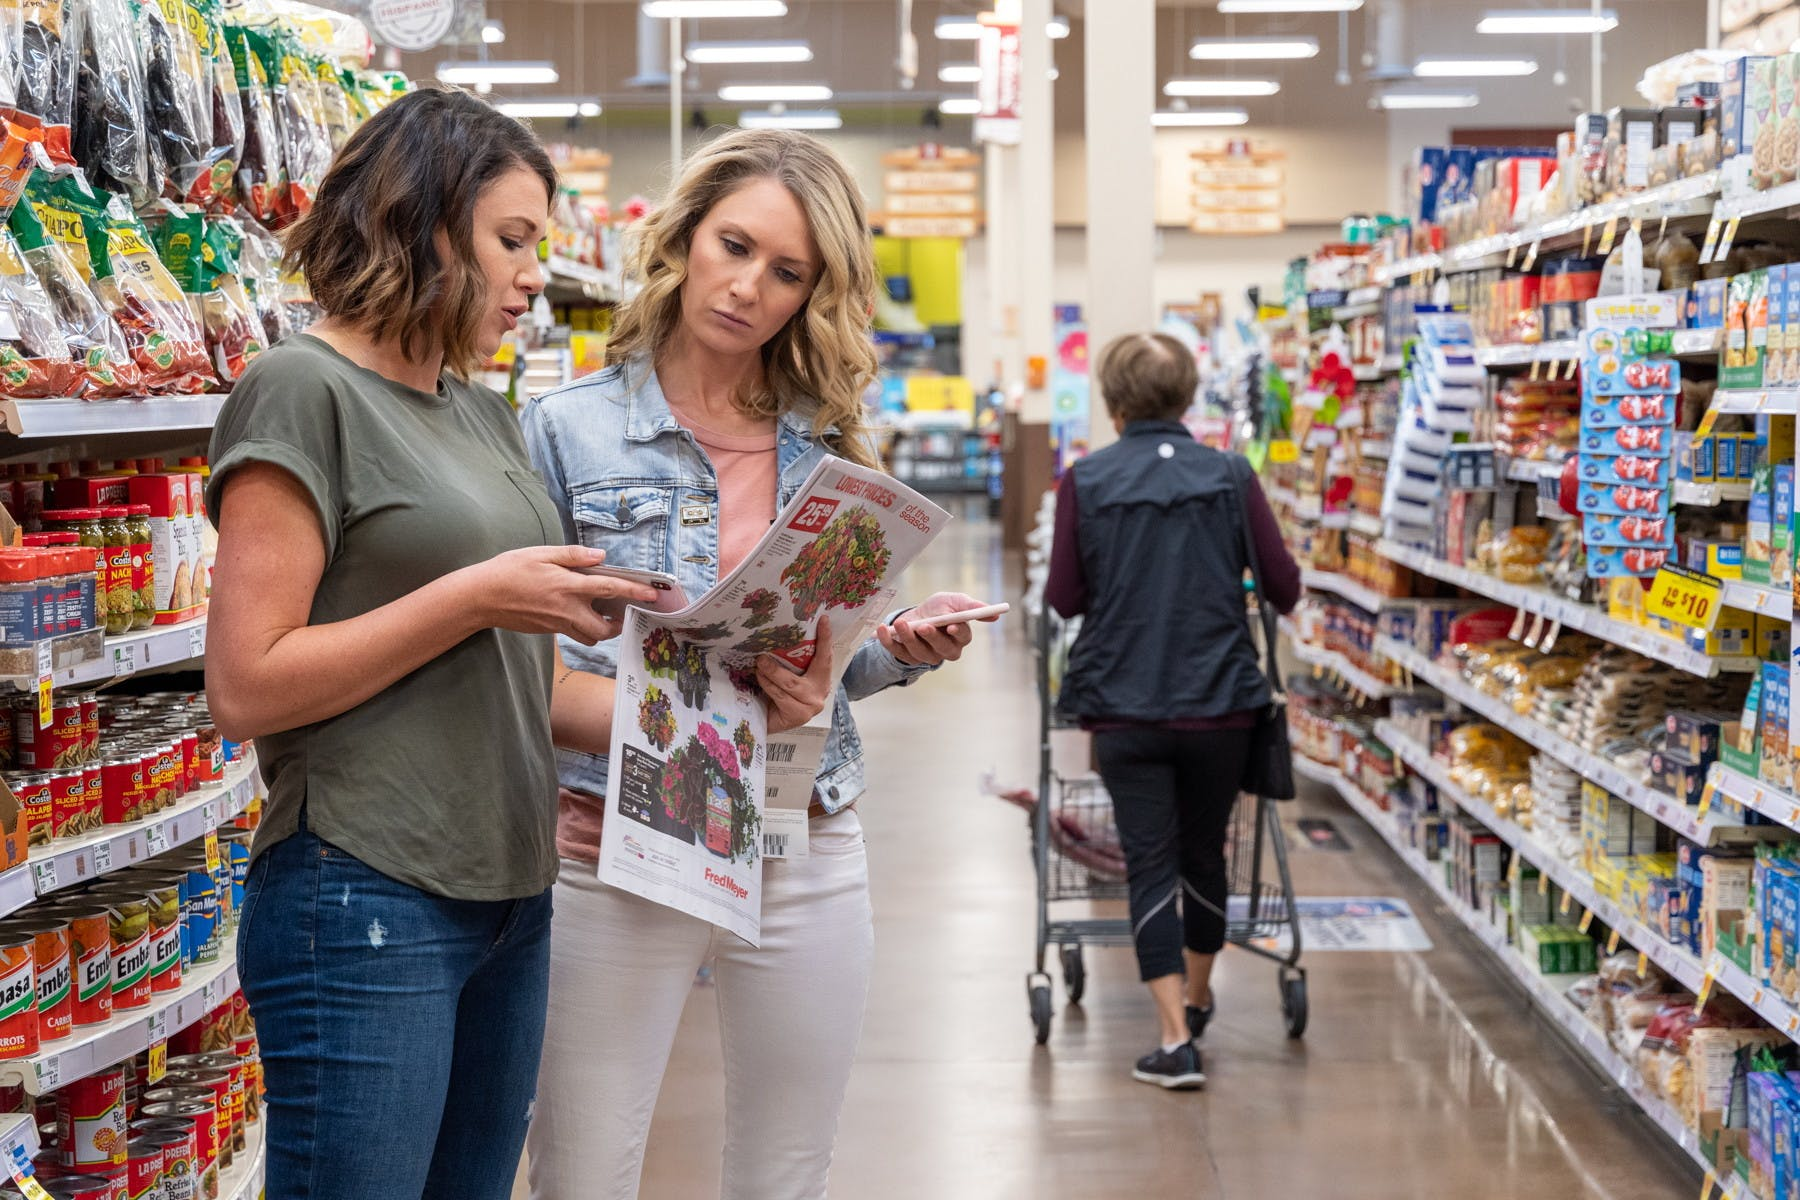 22 Ways To Coupon At Kroger So You Can Save Big The Krazy Coupon Lady